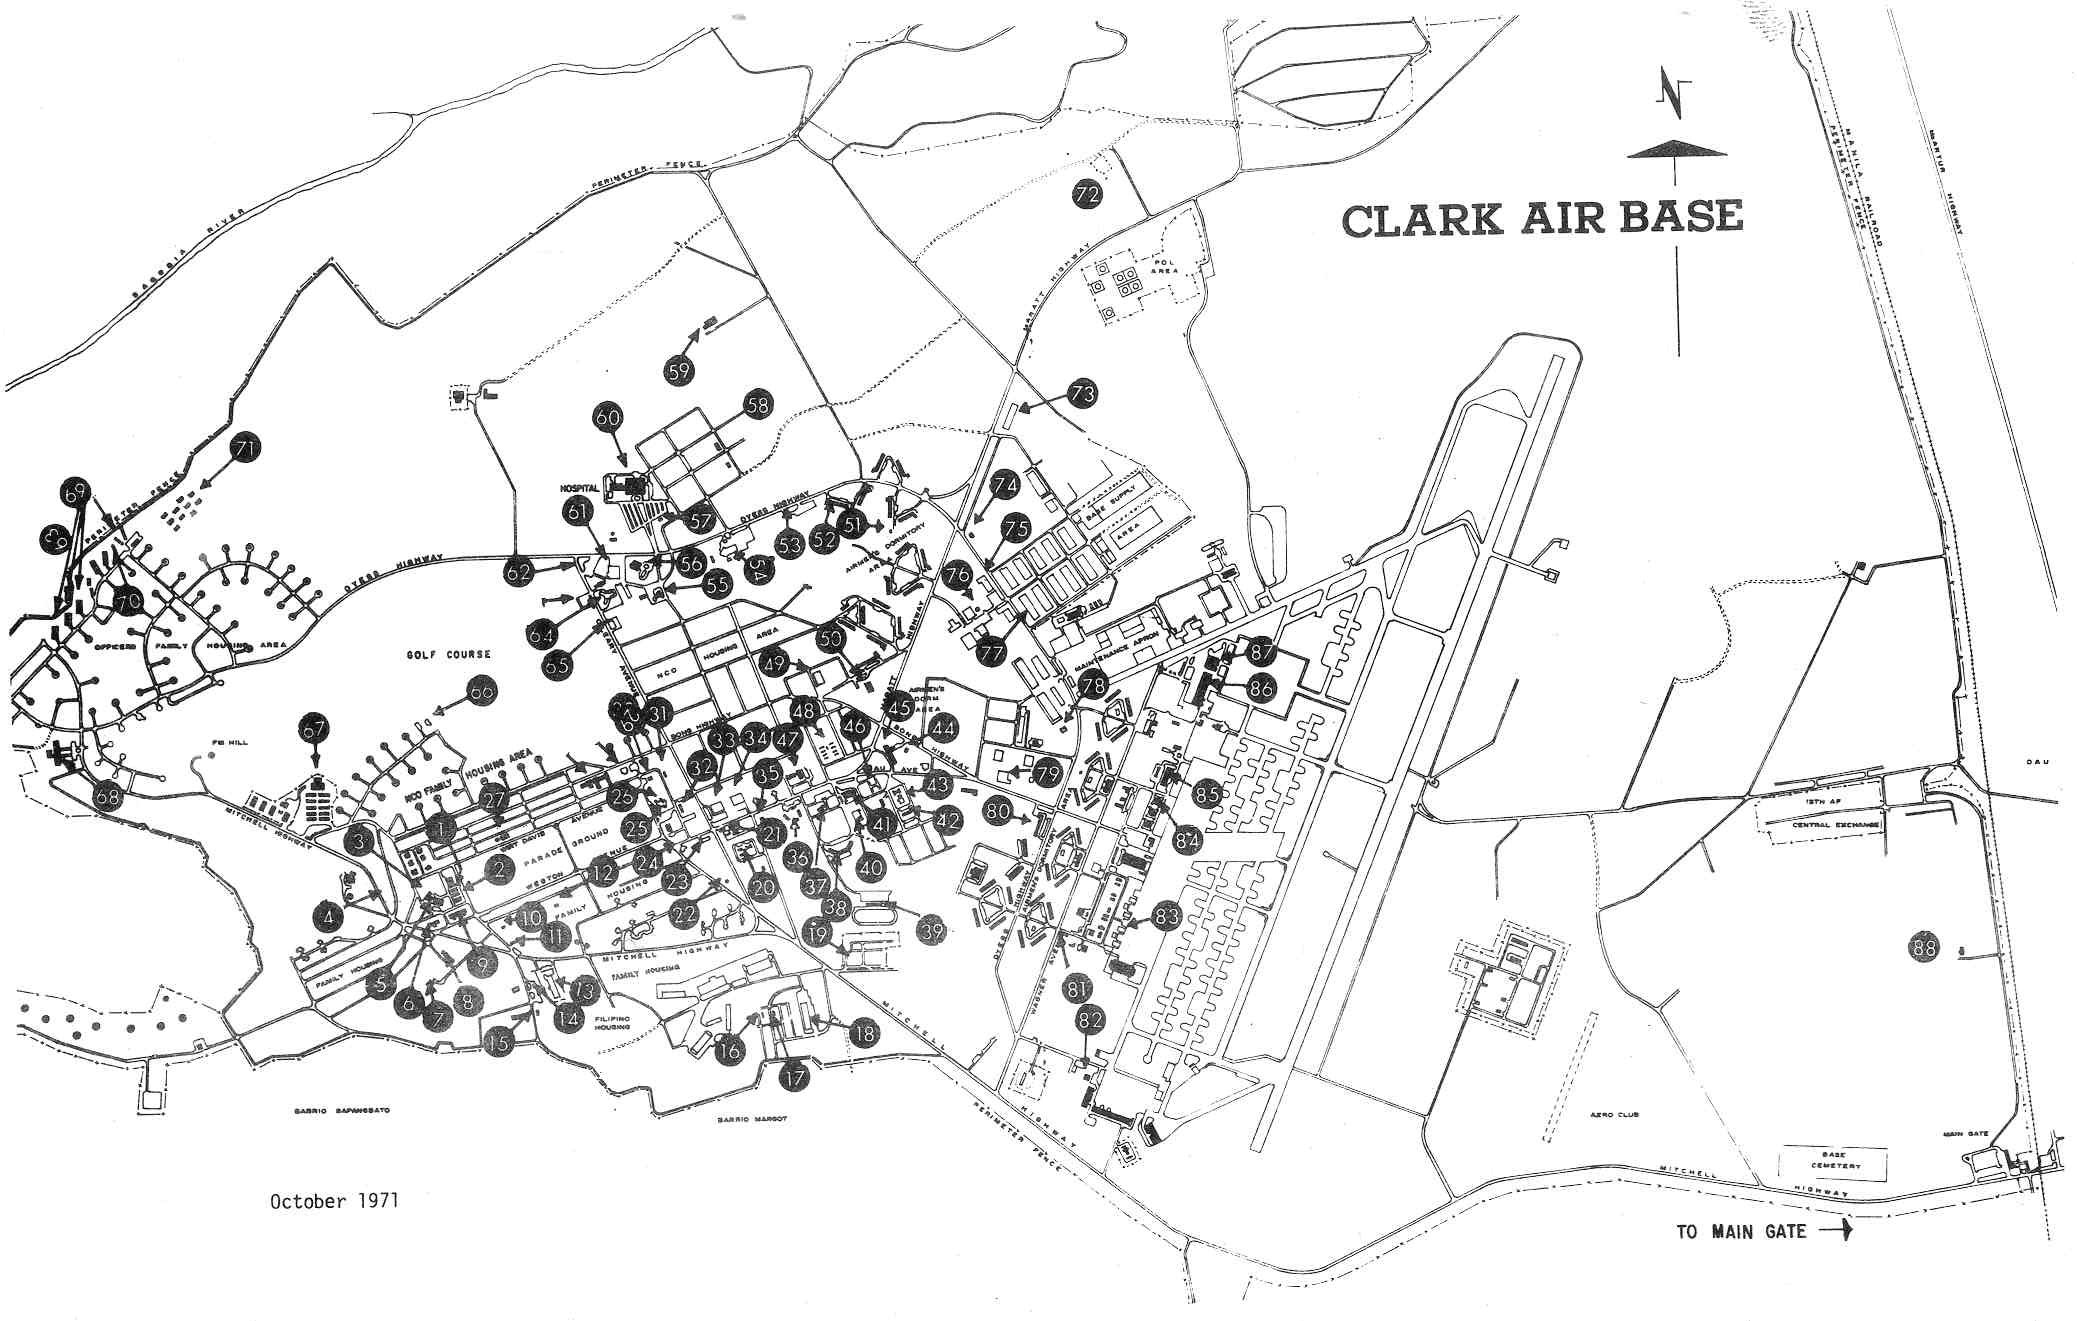 Maps Archive - Wagner HS, Clark AB, and the Philippines